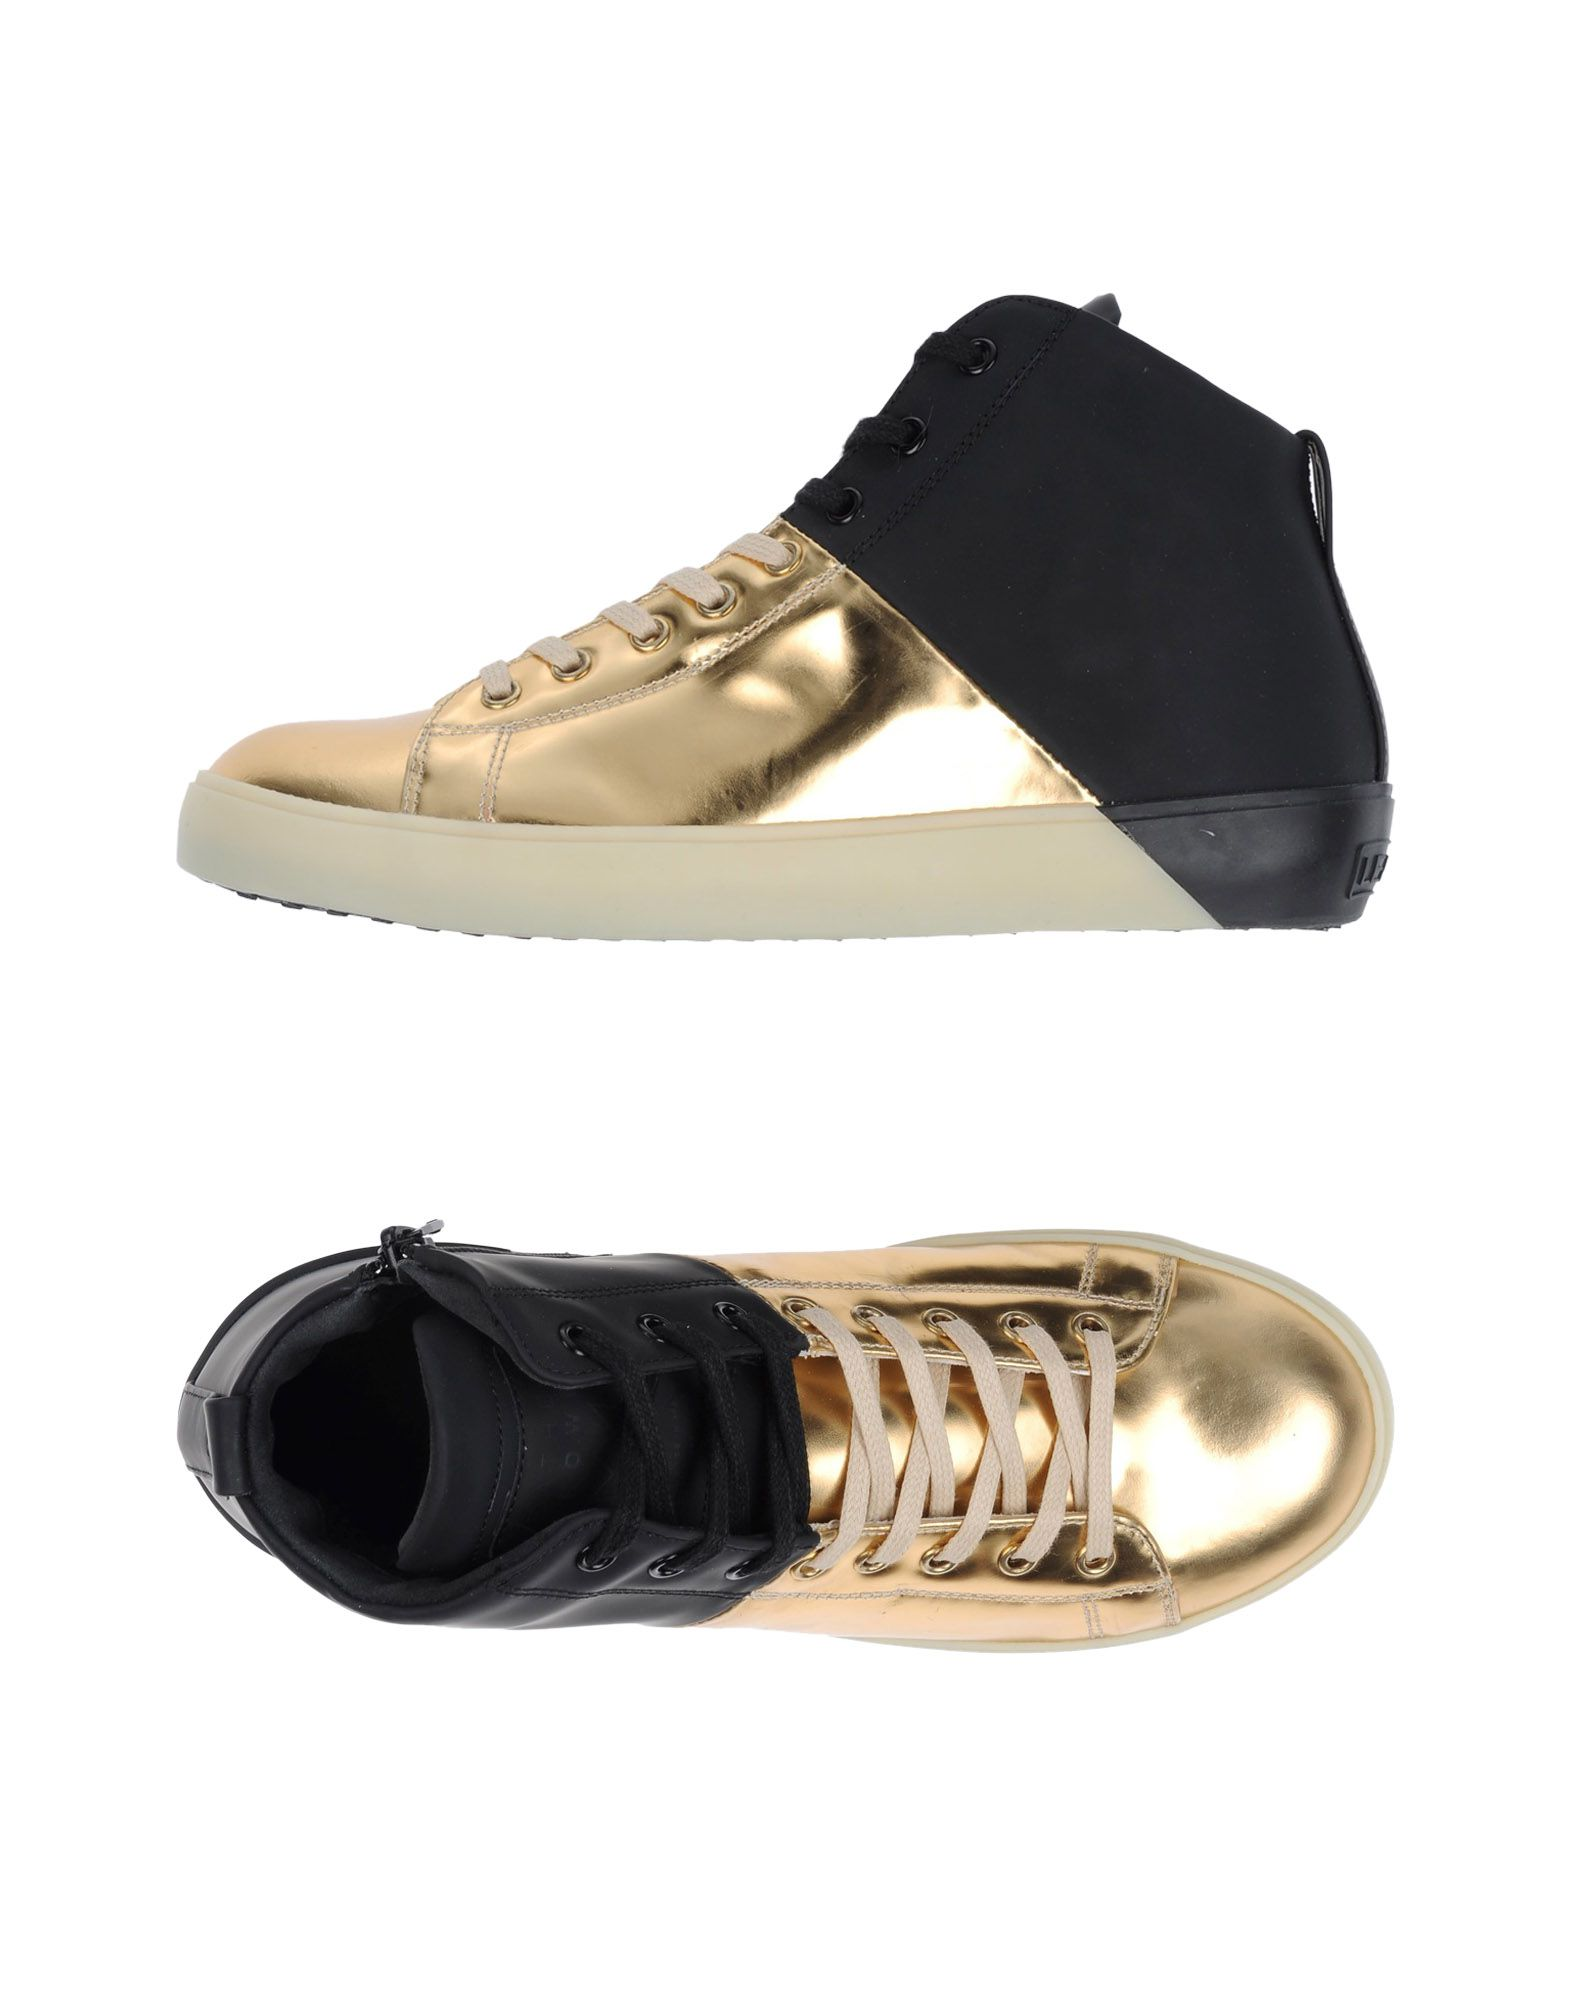 Leather Crown Sneakers Sneakers Sneakers - Women Leather Crown Sneakers online on  United Kingdom - 11259006QU c56a60